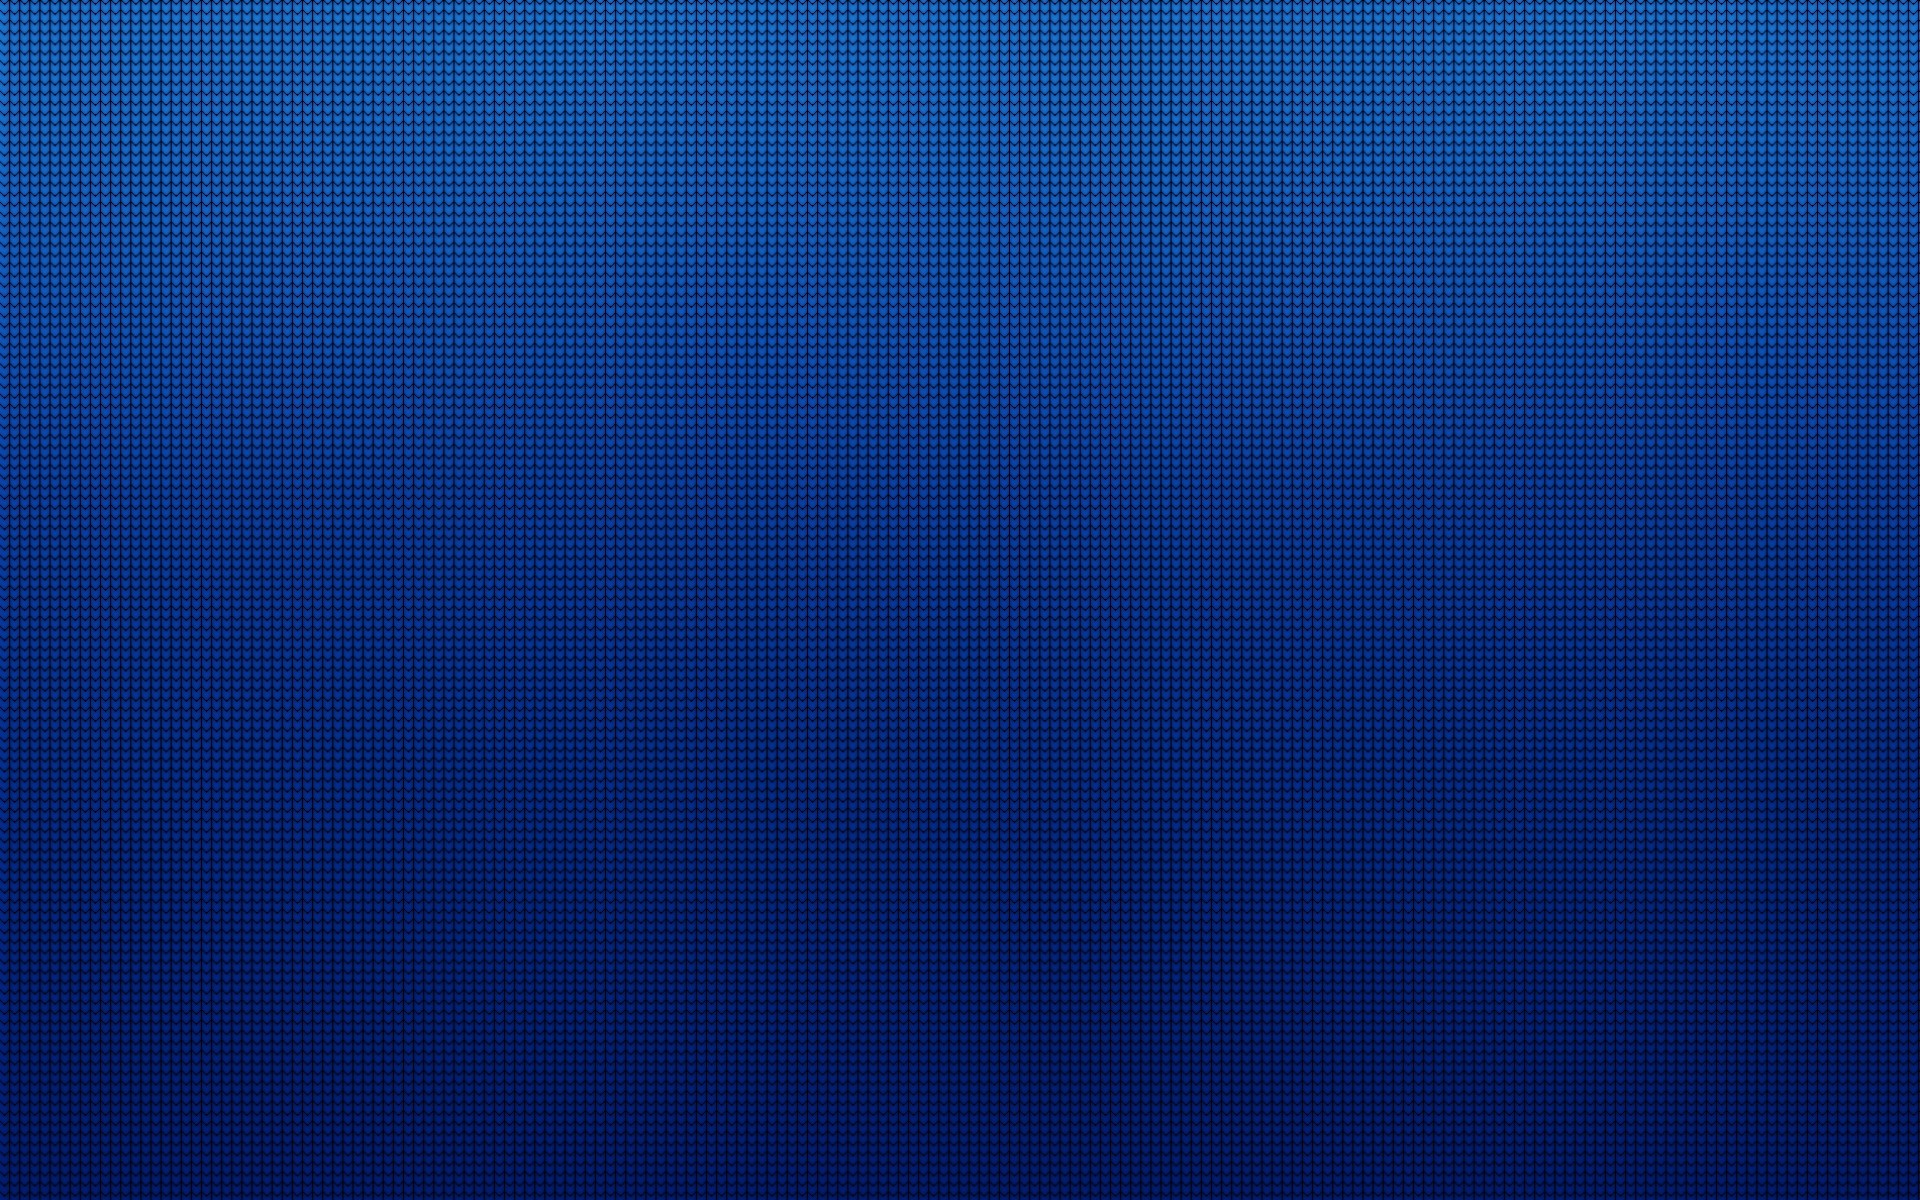 Dark blue checks web background Daily pics update HD Wallpapers 1920x1200